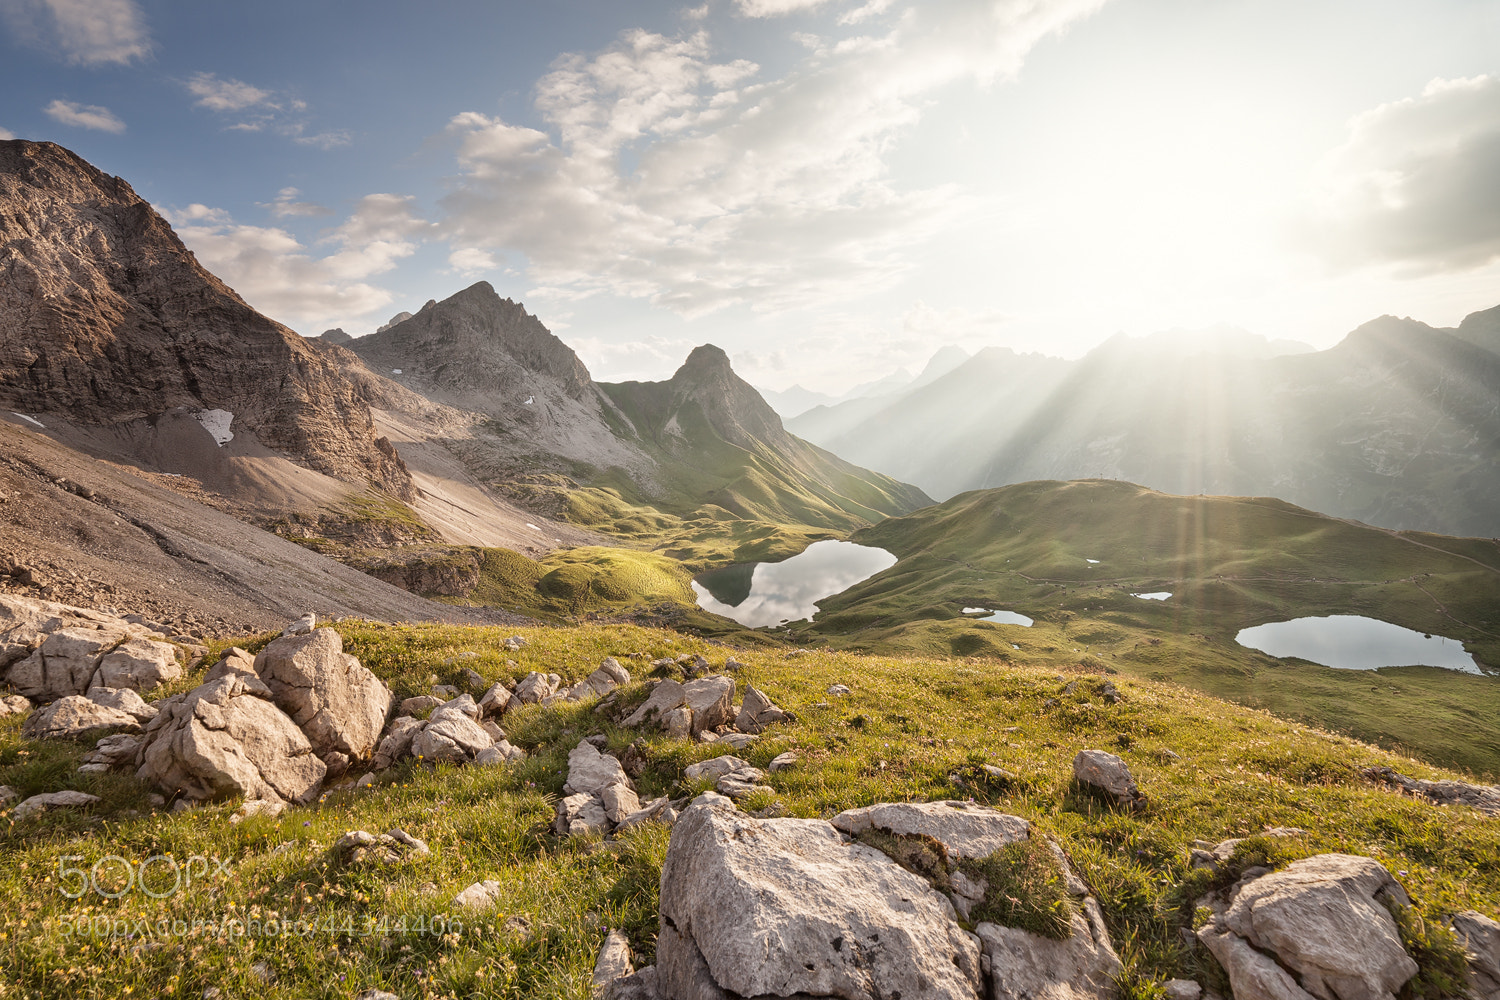 Photograph Rappensee by Holger Mörbe on 500px